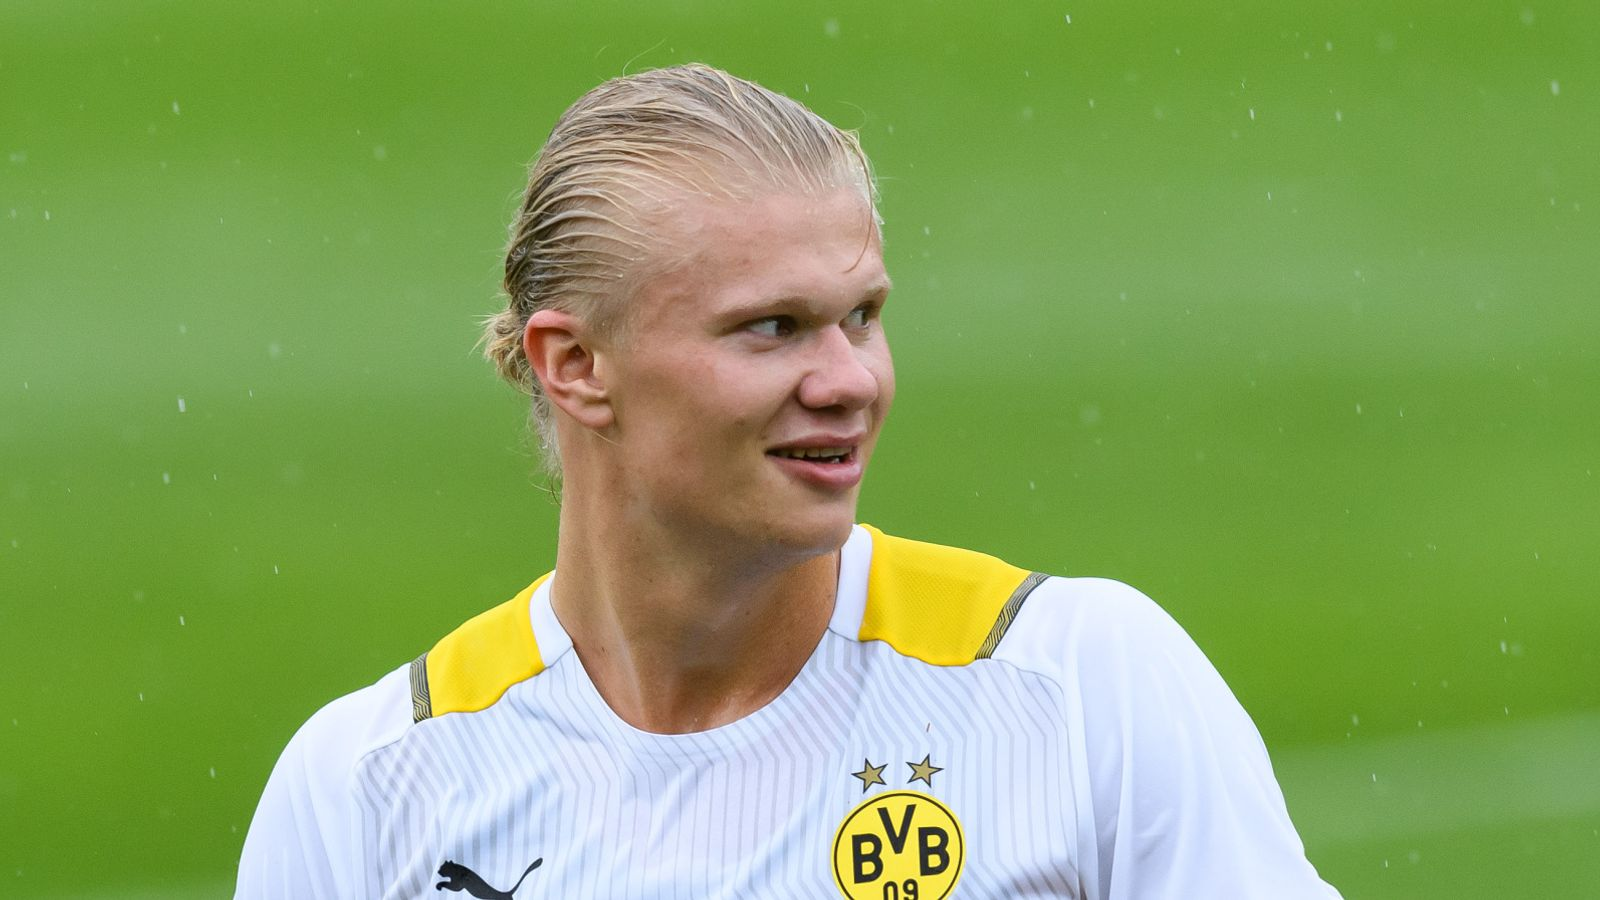 Erling Haaland: Borussia Dortmund forward plays down Chelsea transfer link, insisting 'it's just rumours'